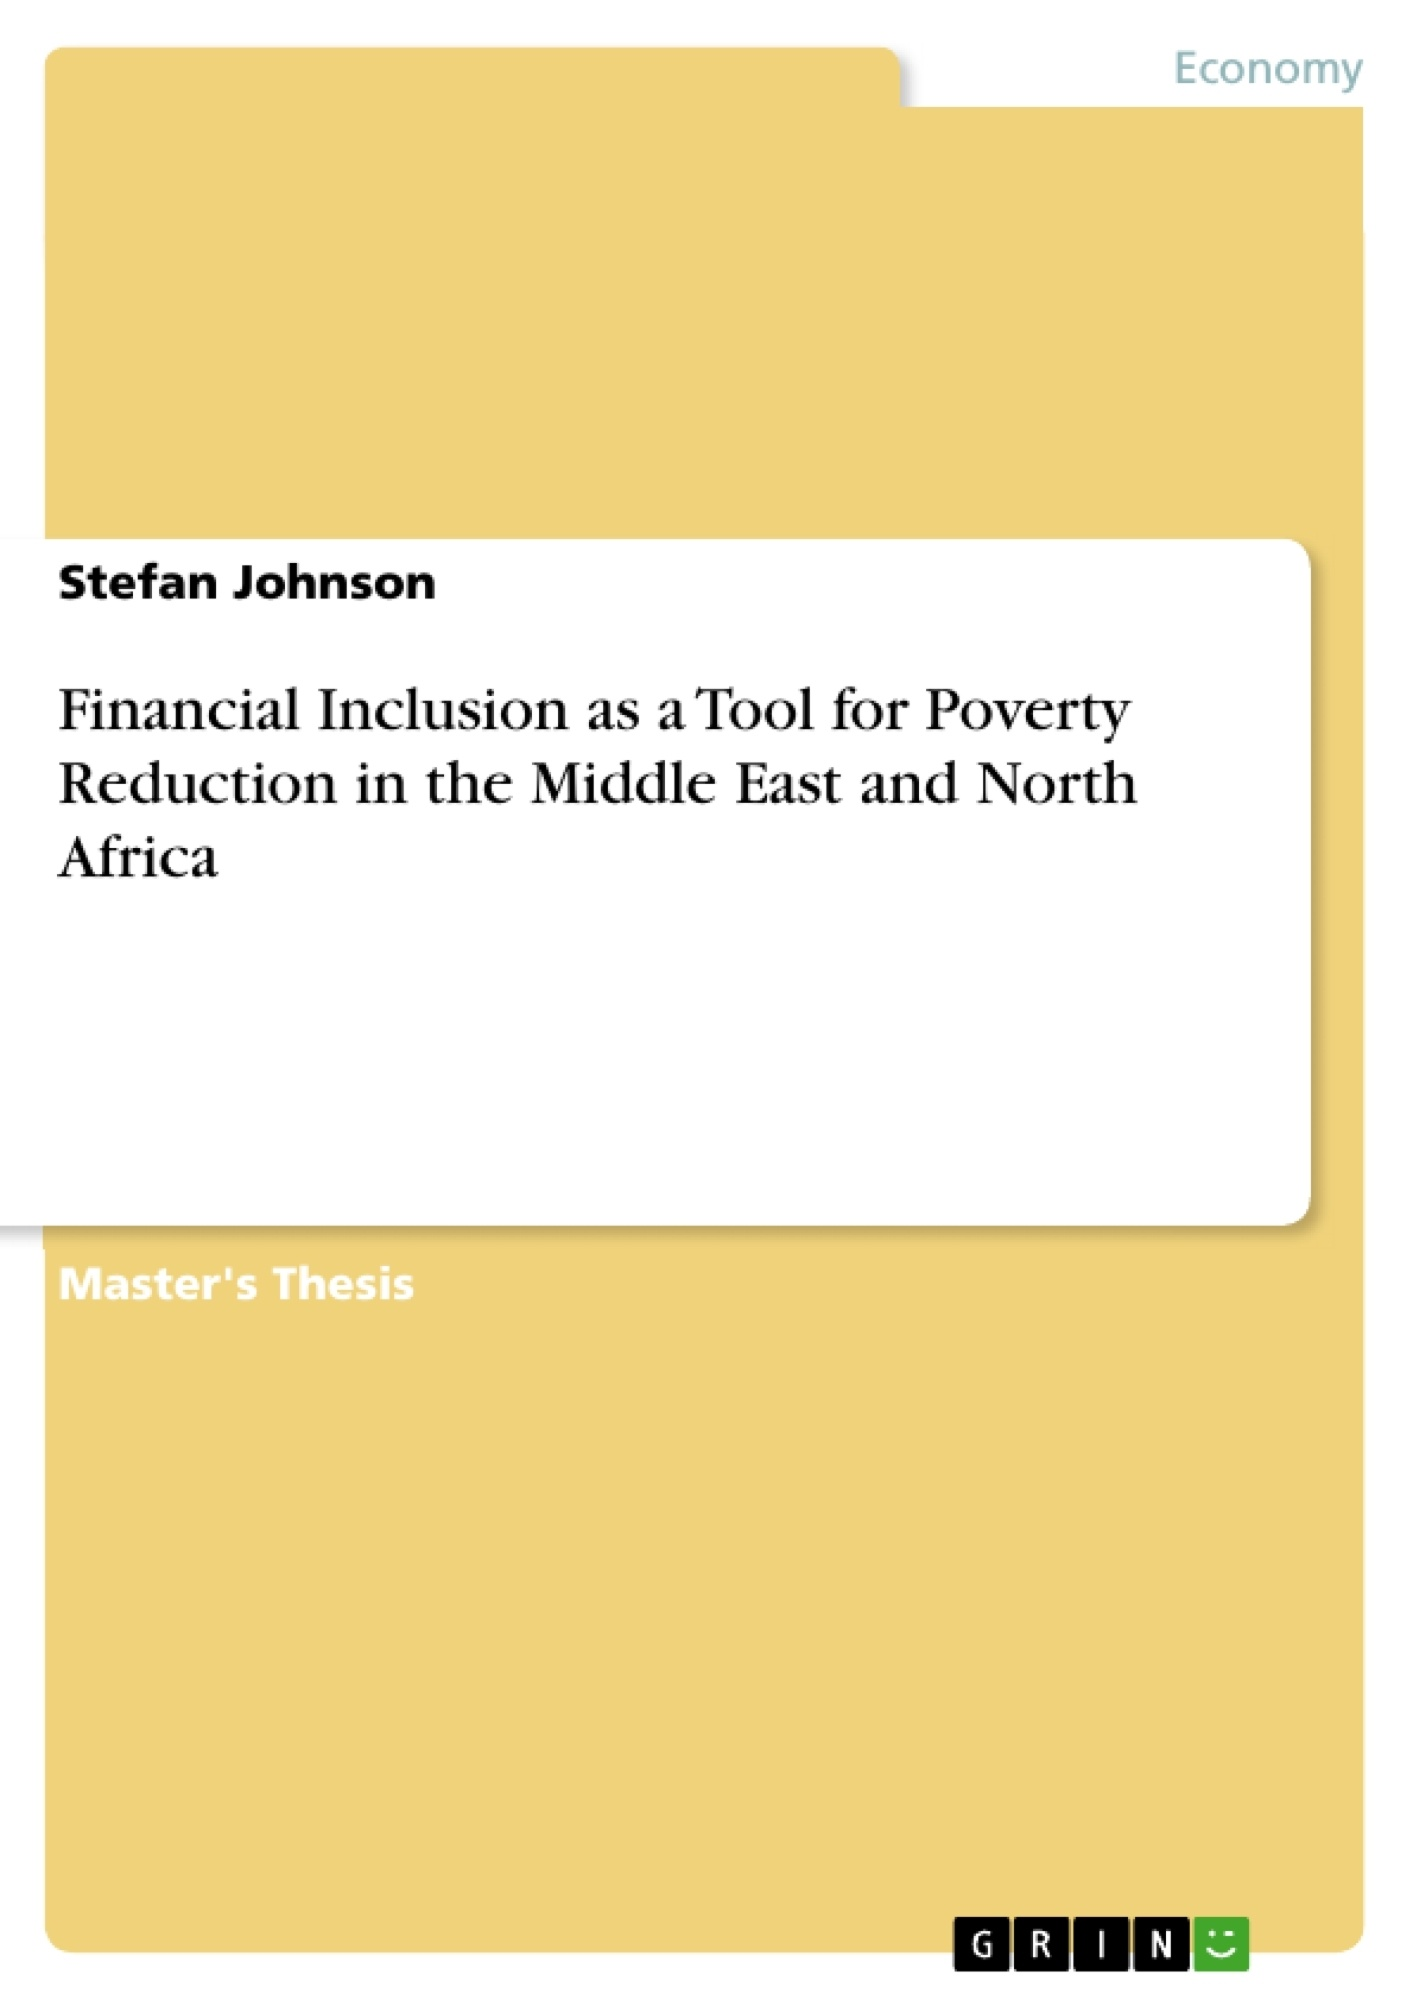 Title: Financial Inclusion as a Tool for Poverty Reduction in the Middle East and North Africa